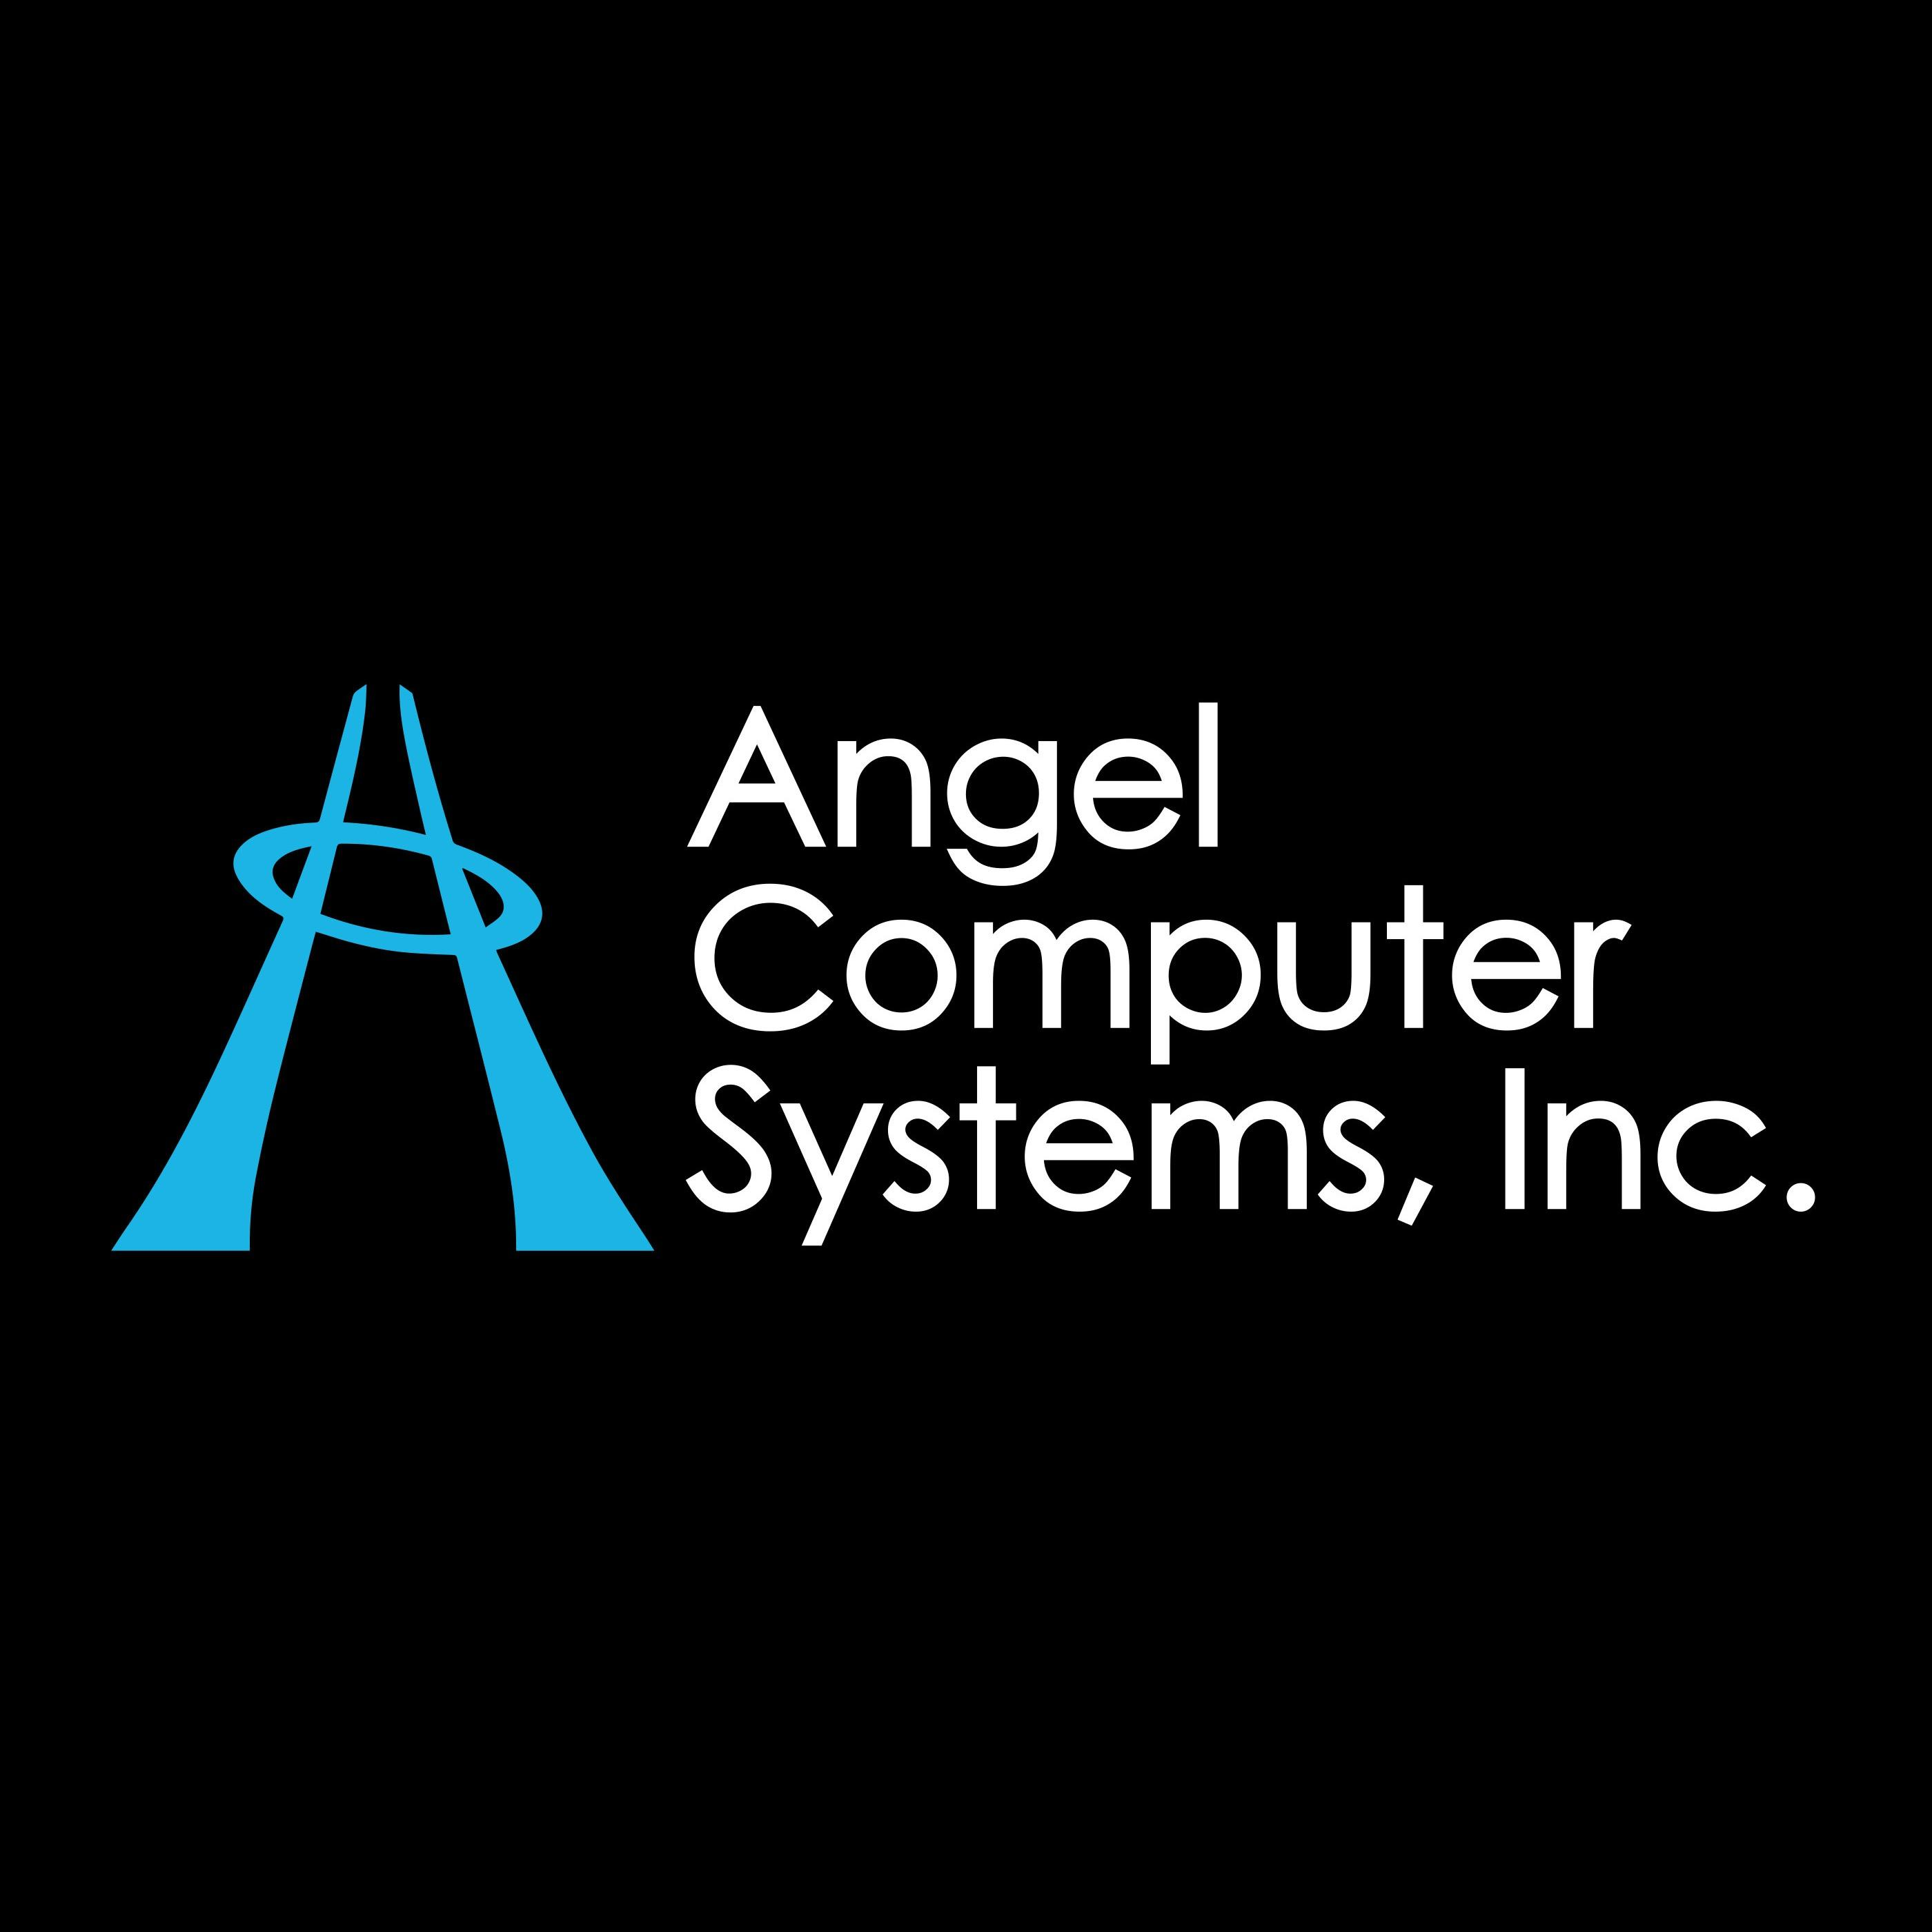 Angel Computer Systems, Inc. - Lakewood, WA - Computer Consulting Services